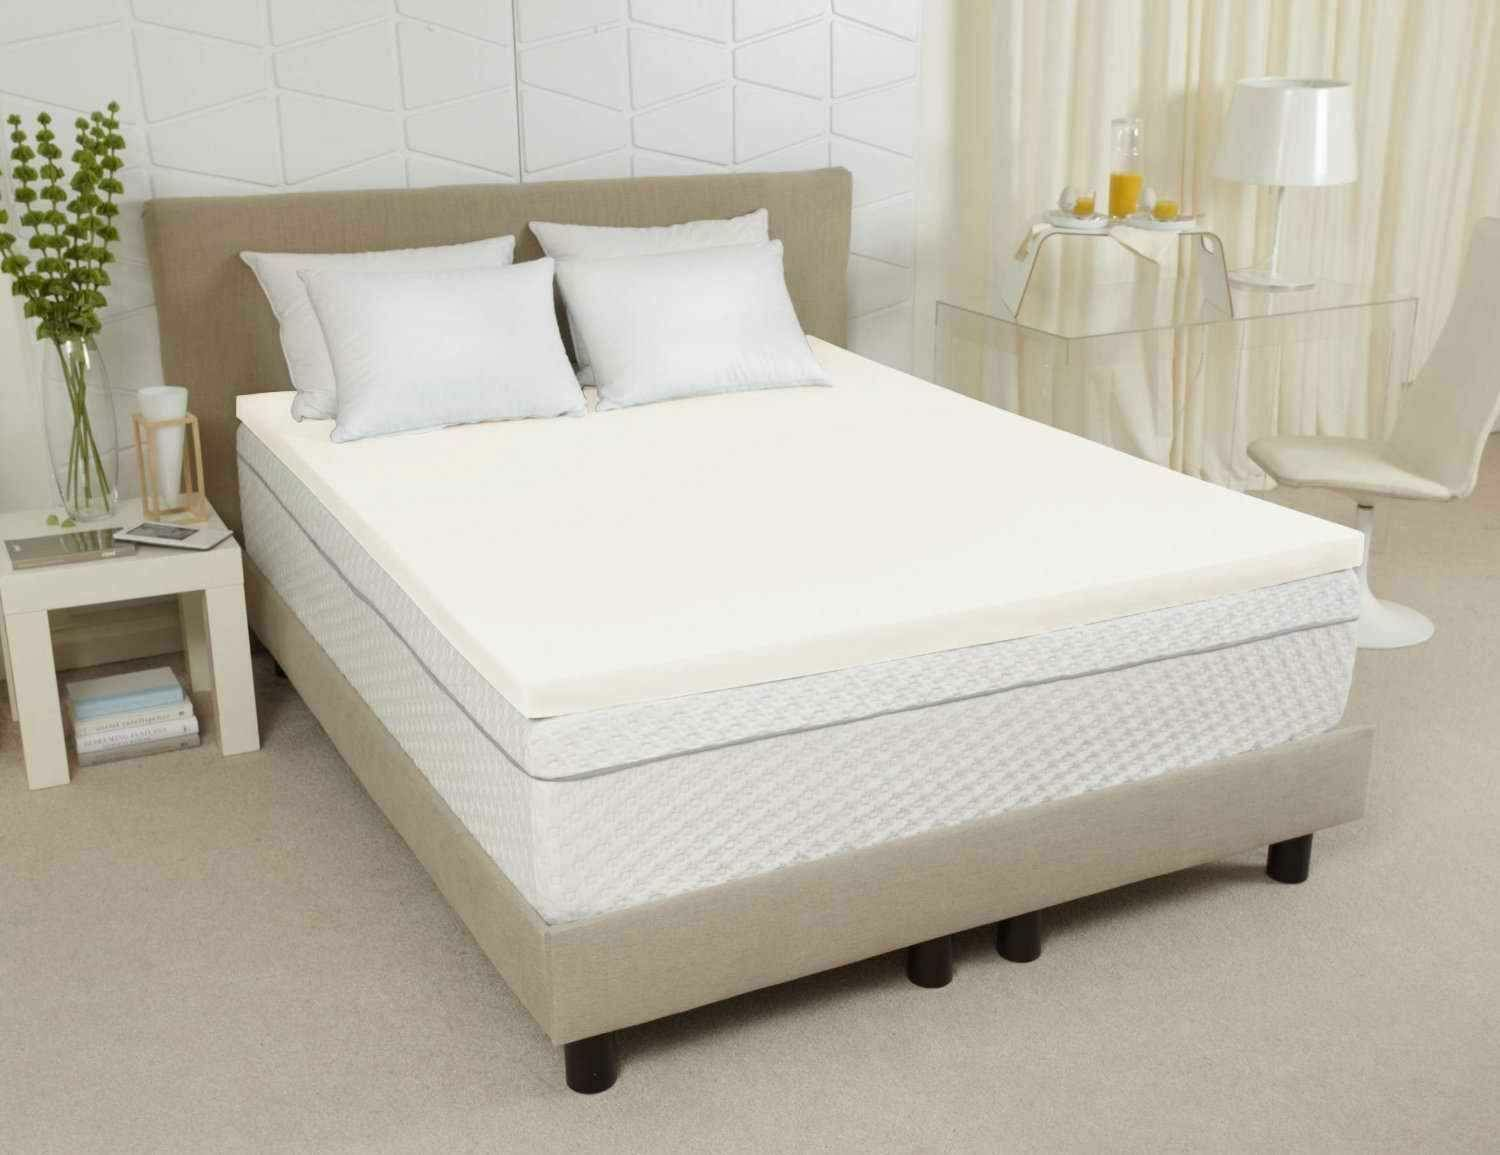 how to pick a memory foam mattress topper ebay. Black Bedroom Furniture Sets. Home Design Ideas